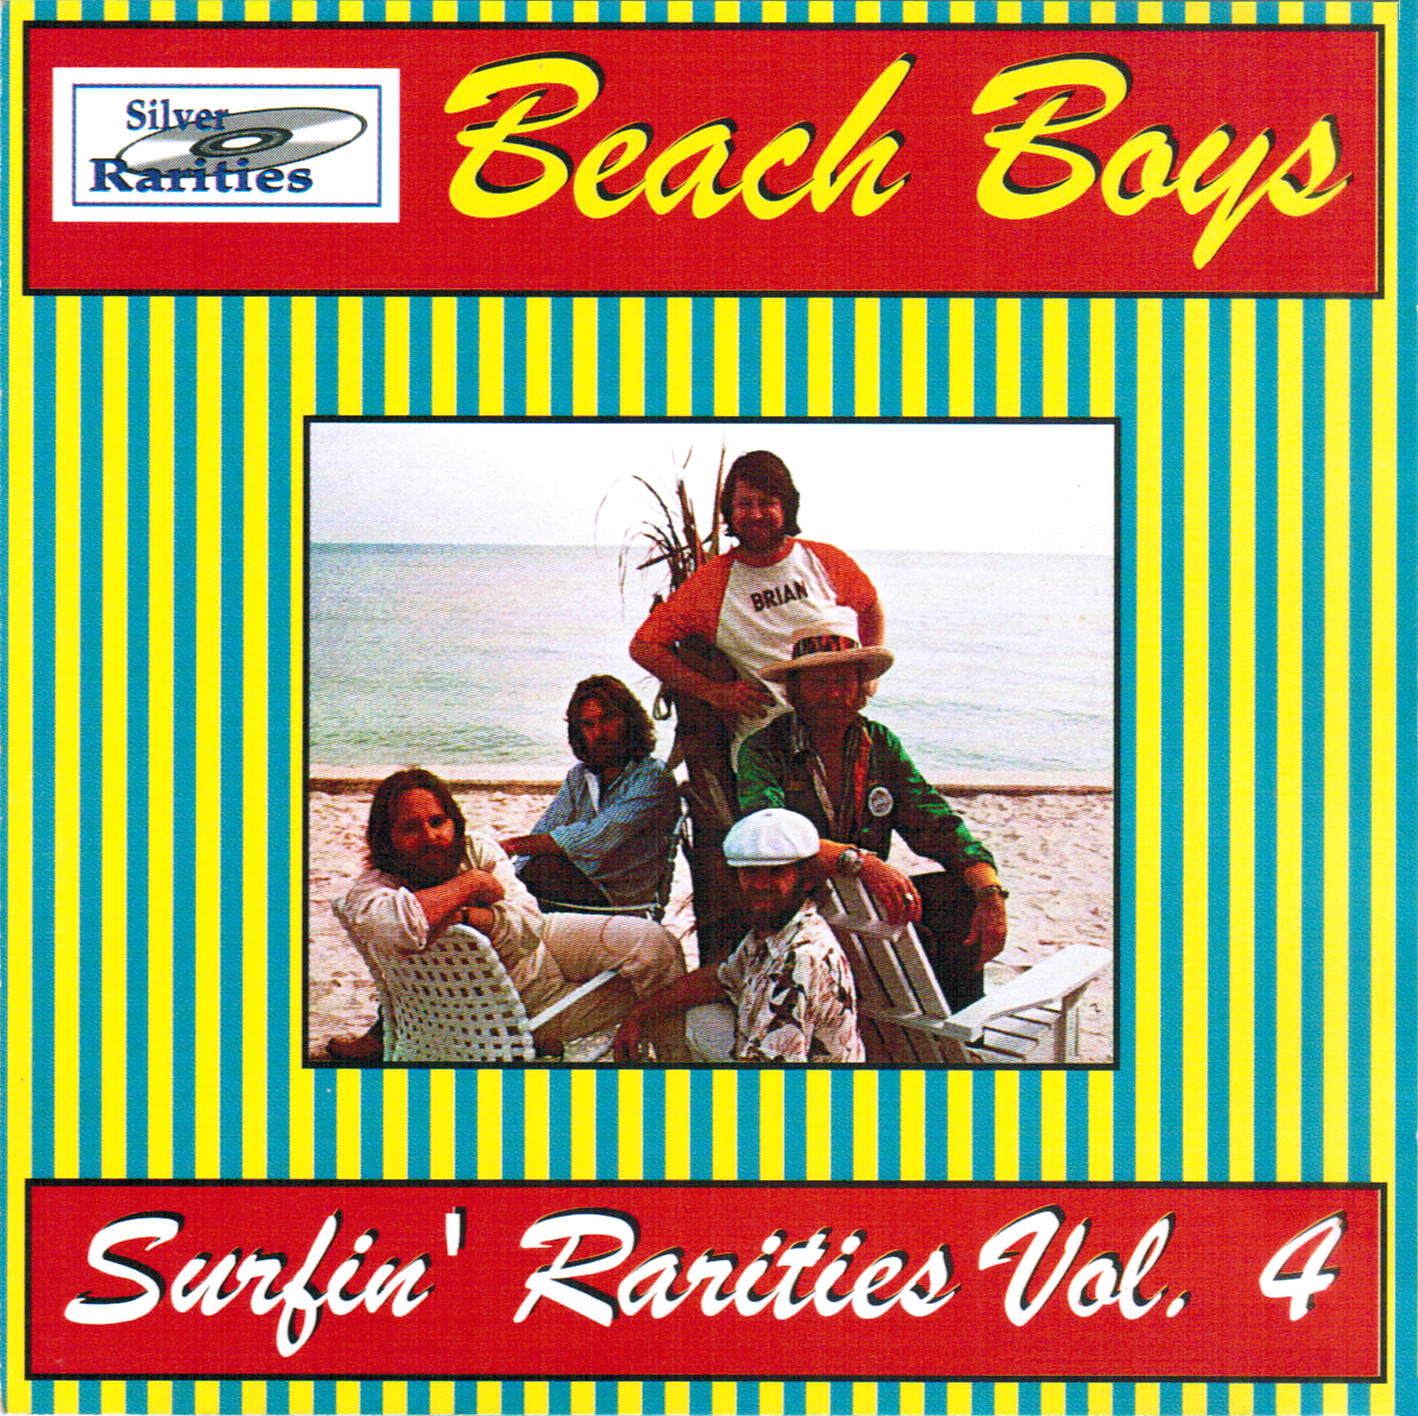 Surfin' Rarities Vol. 4 cover